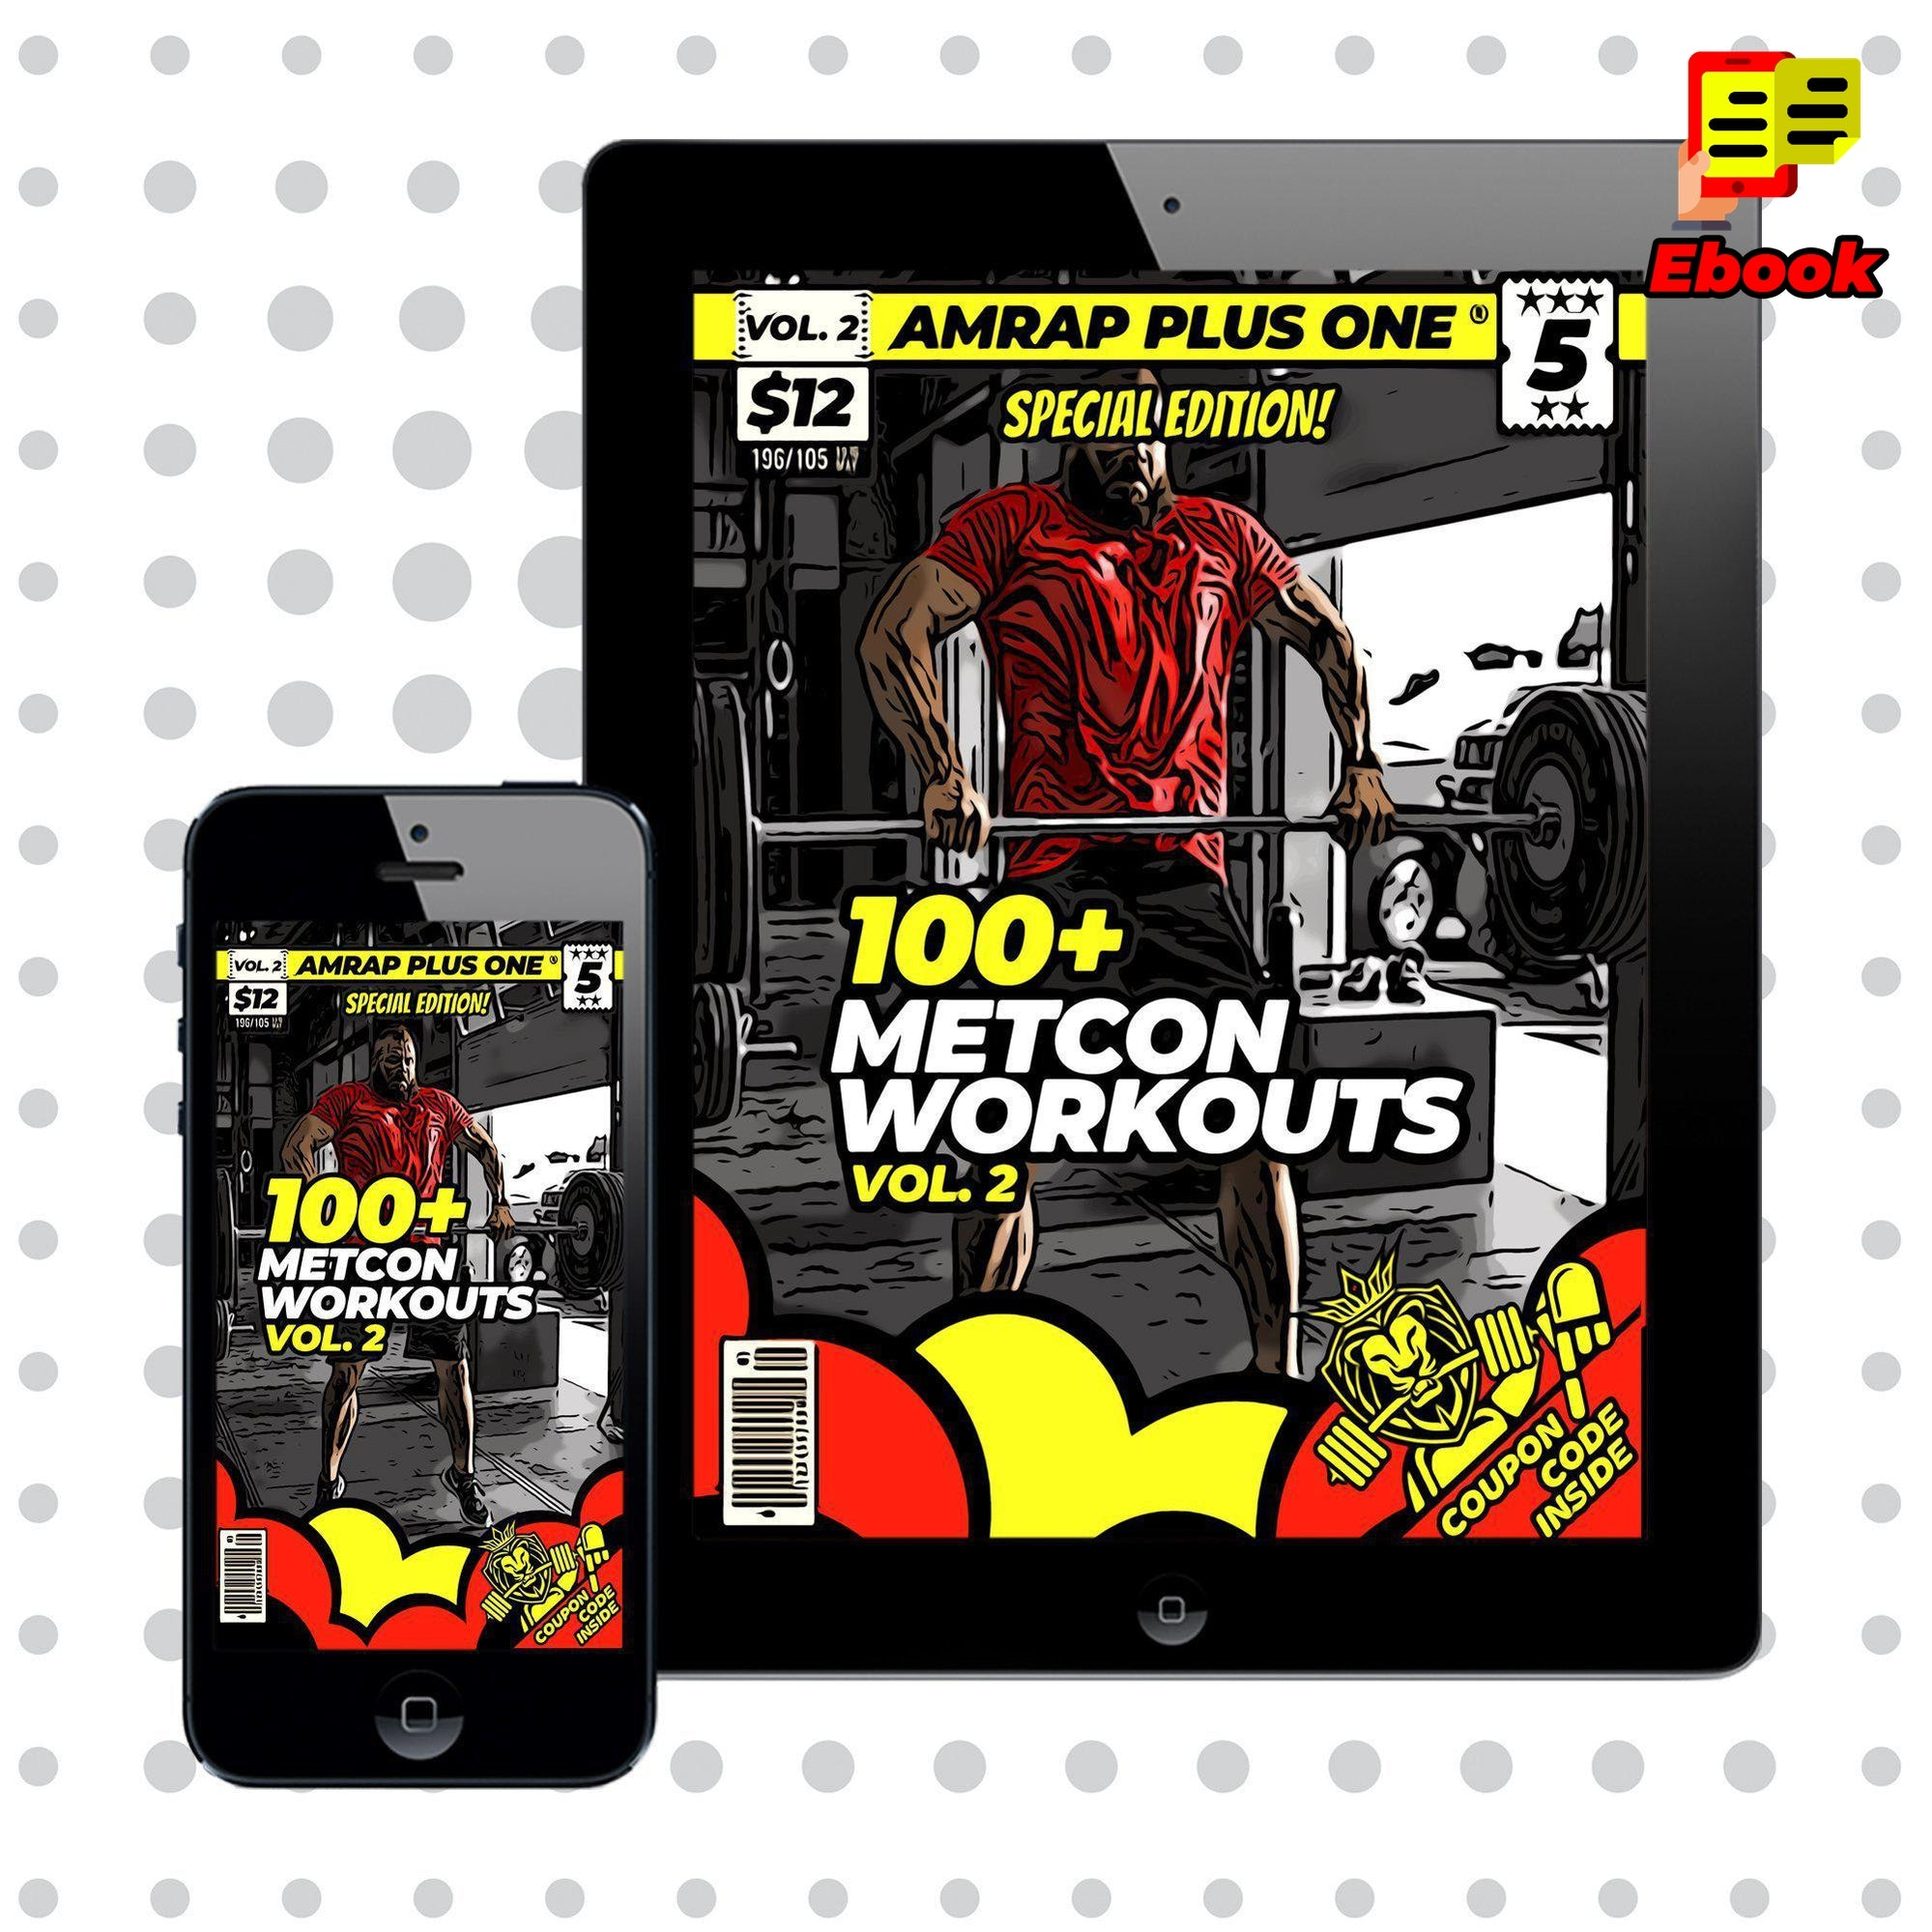 100+ Metcon Workouts Vol. 2 - AMRAP Plus One